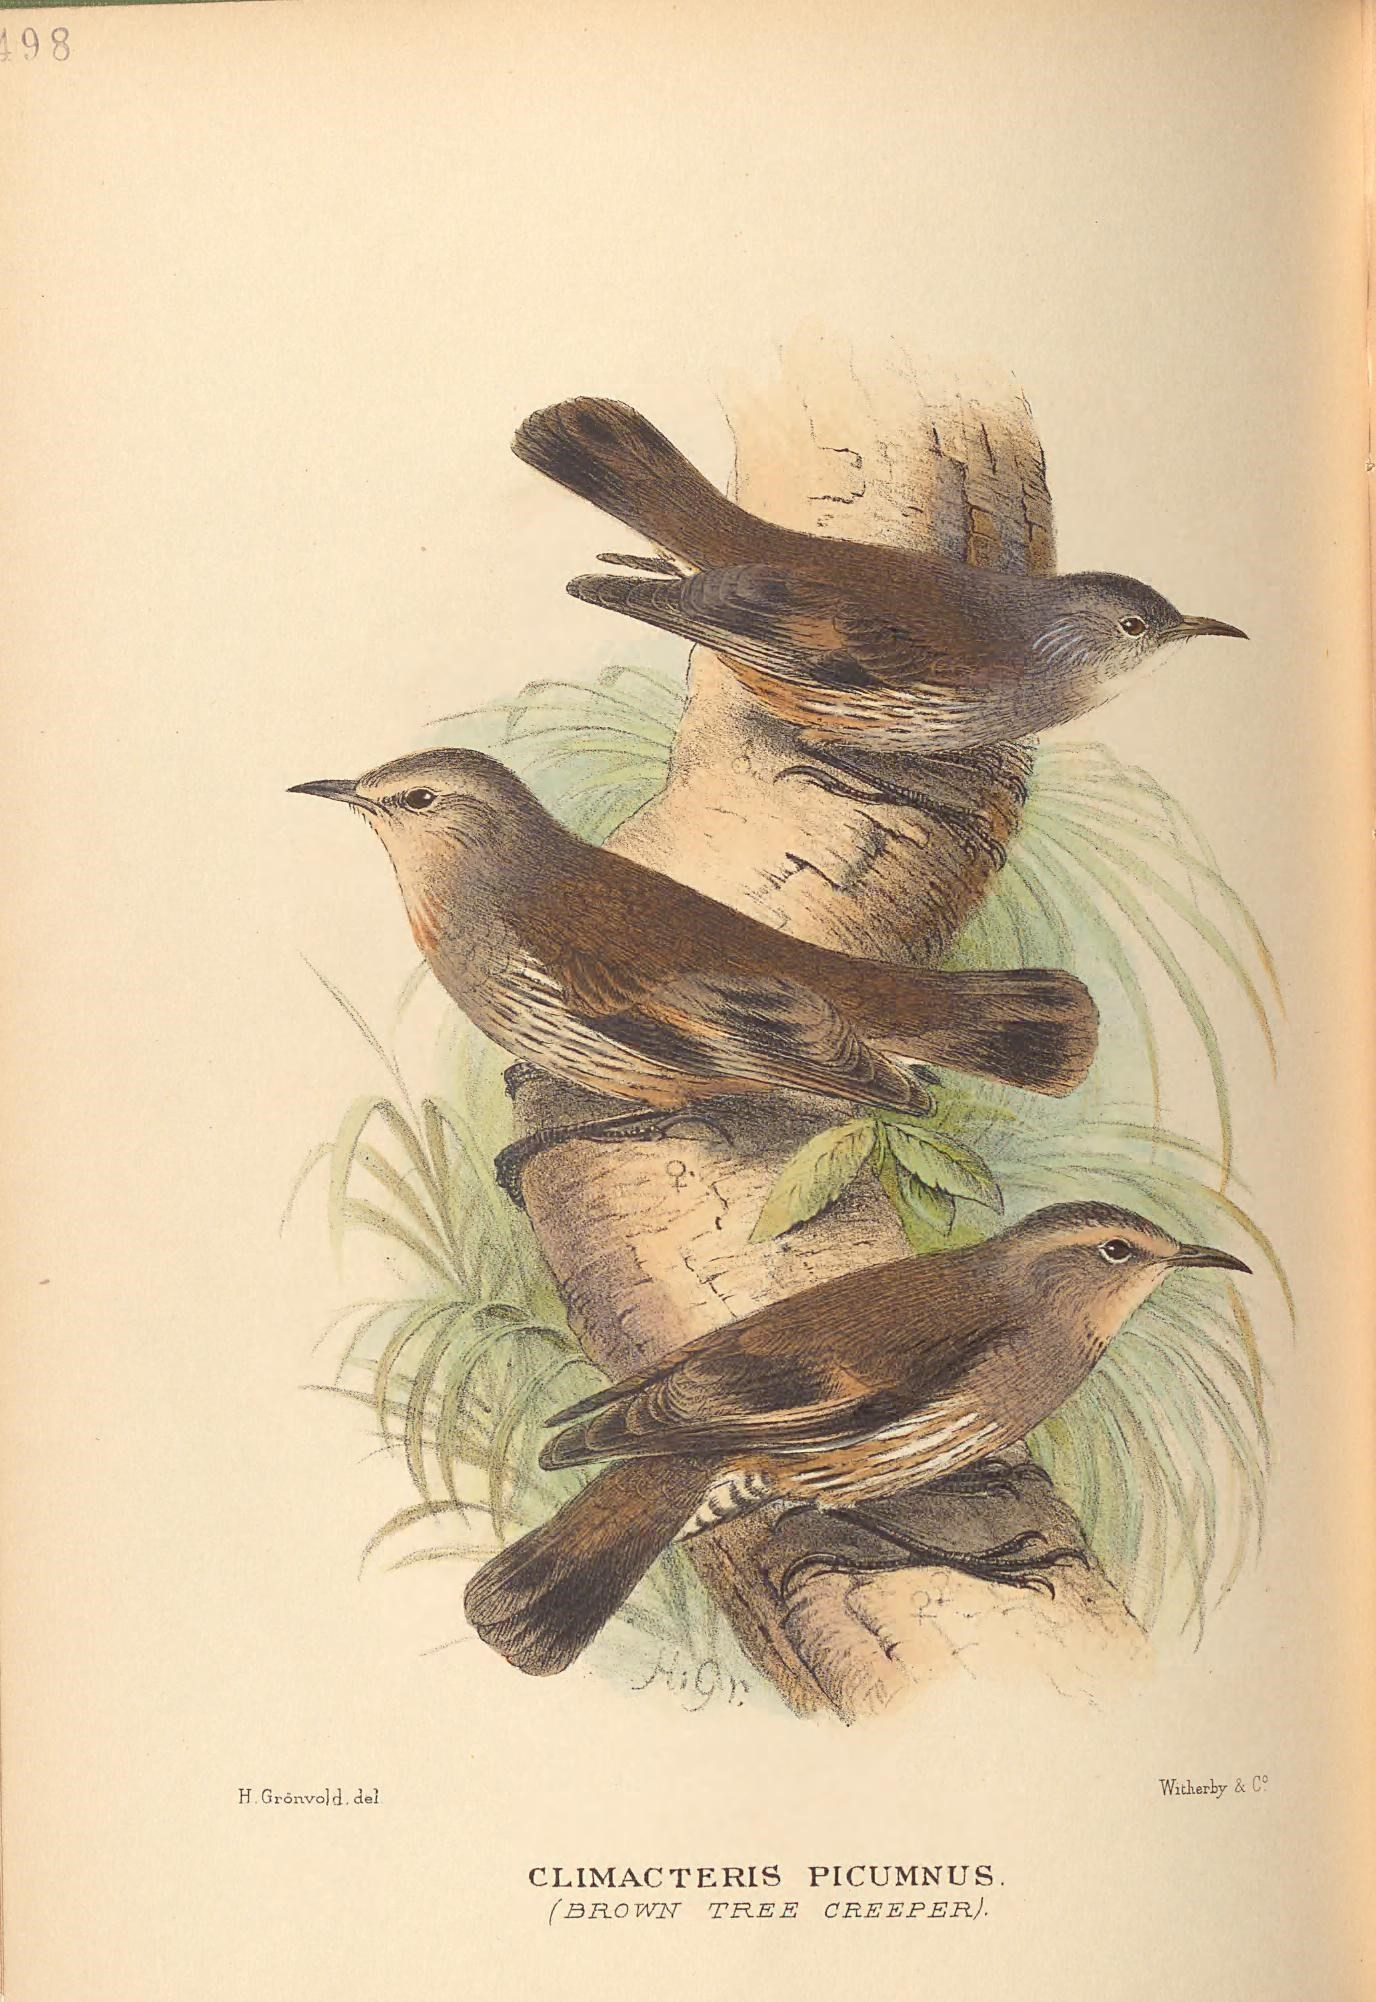 What's this bird? Classify old natural history drawings with R